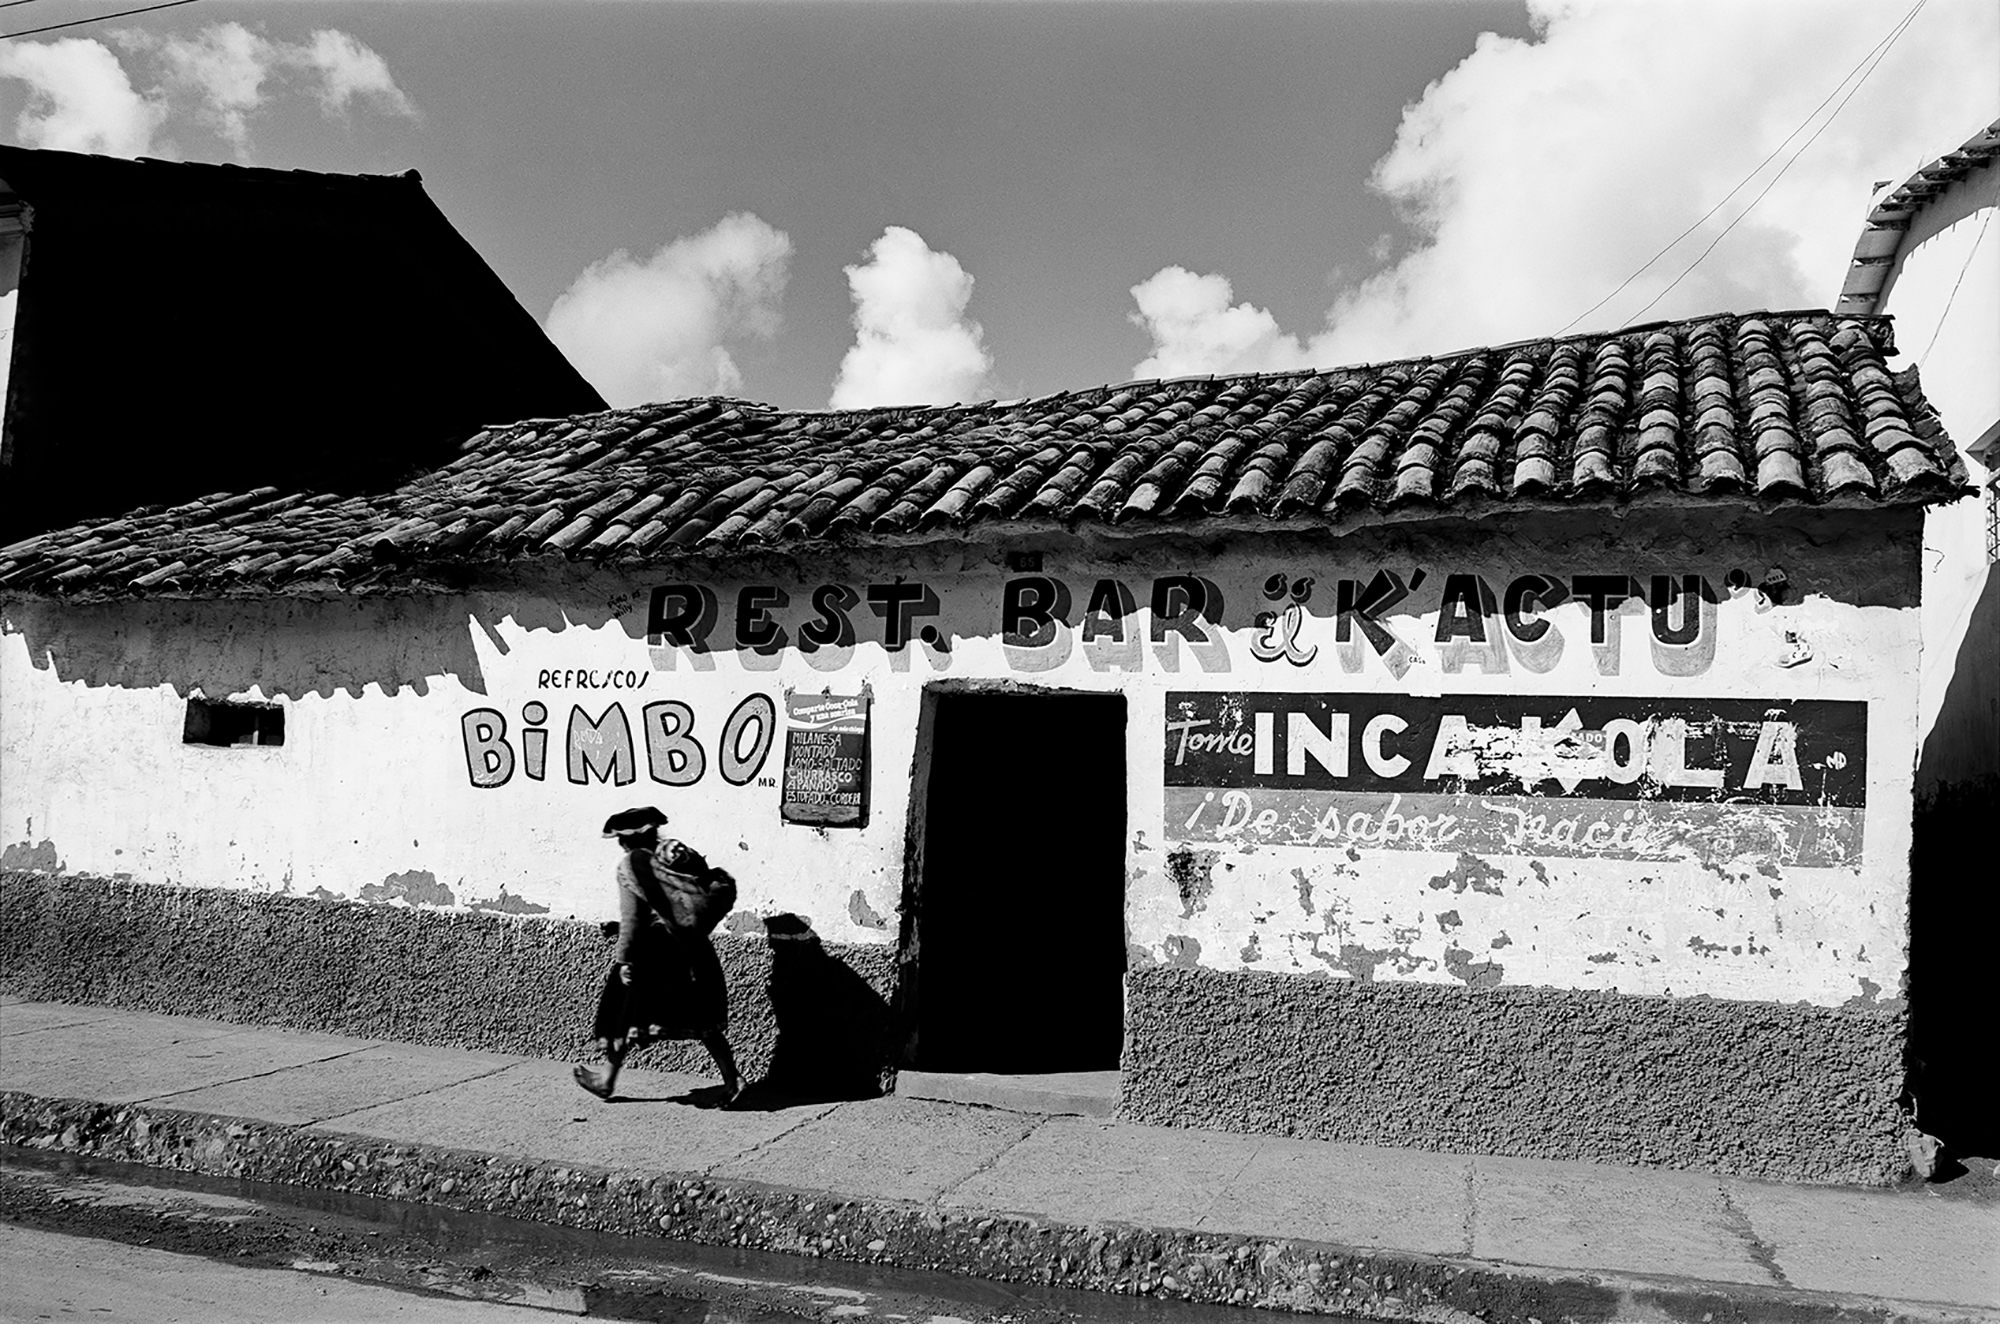 Images from Bailey's Peru © David Bailey